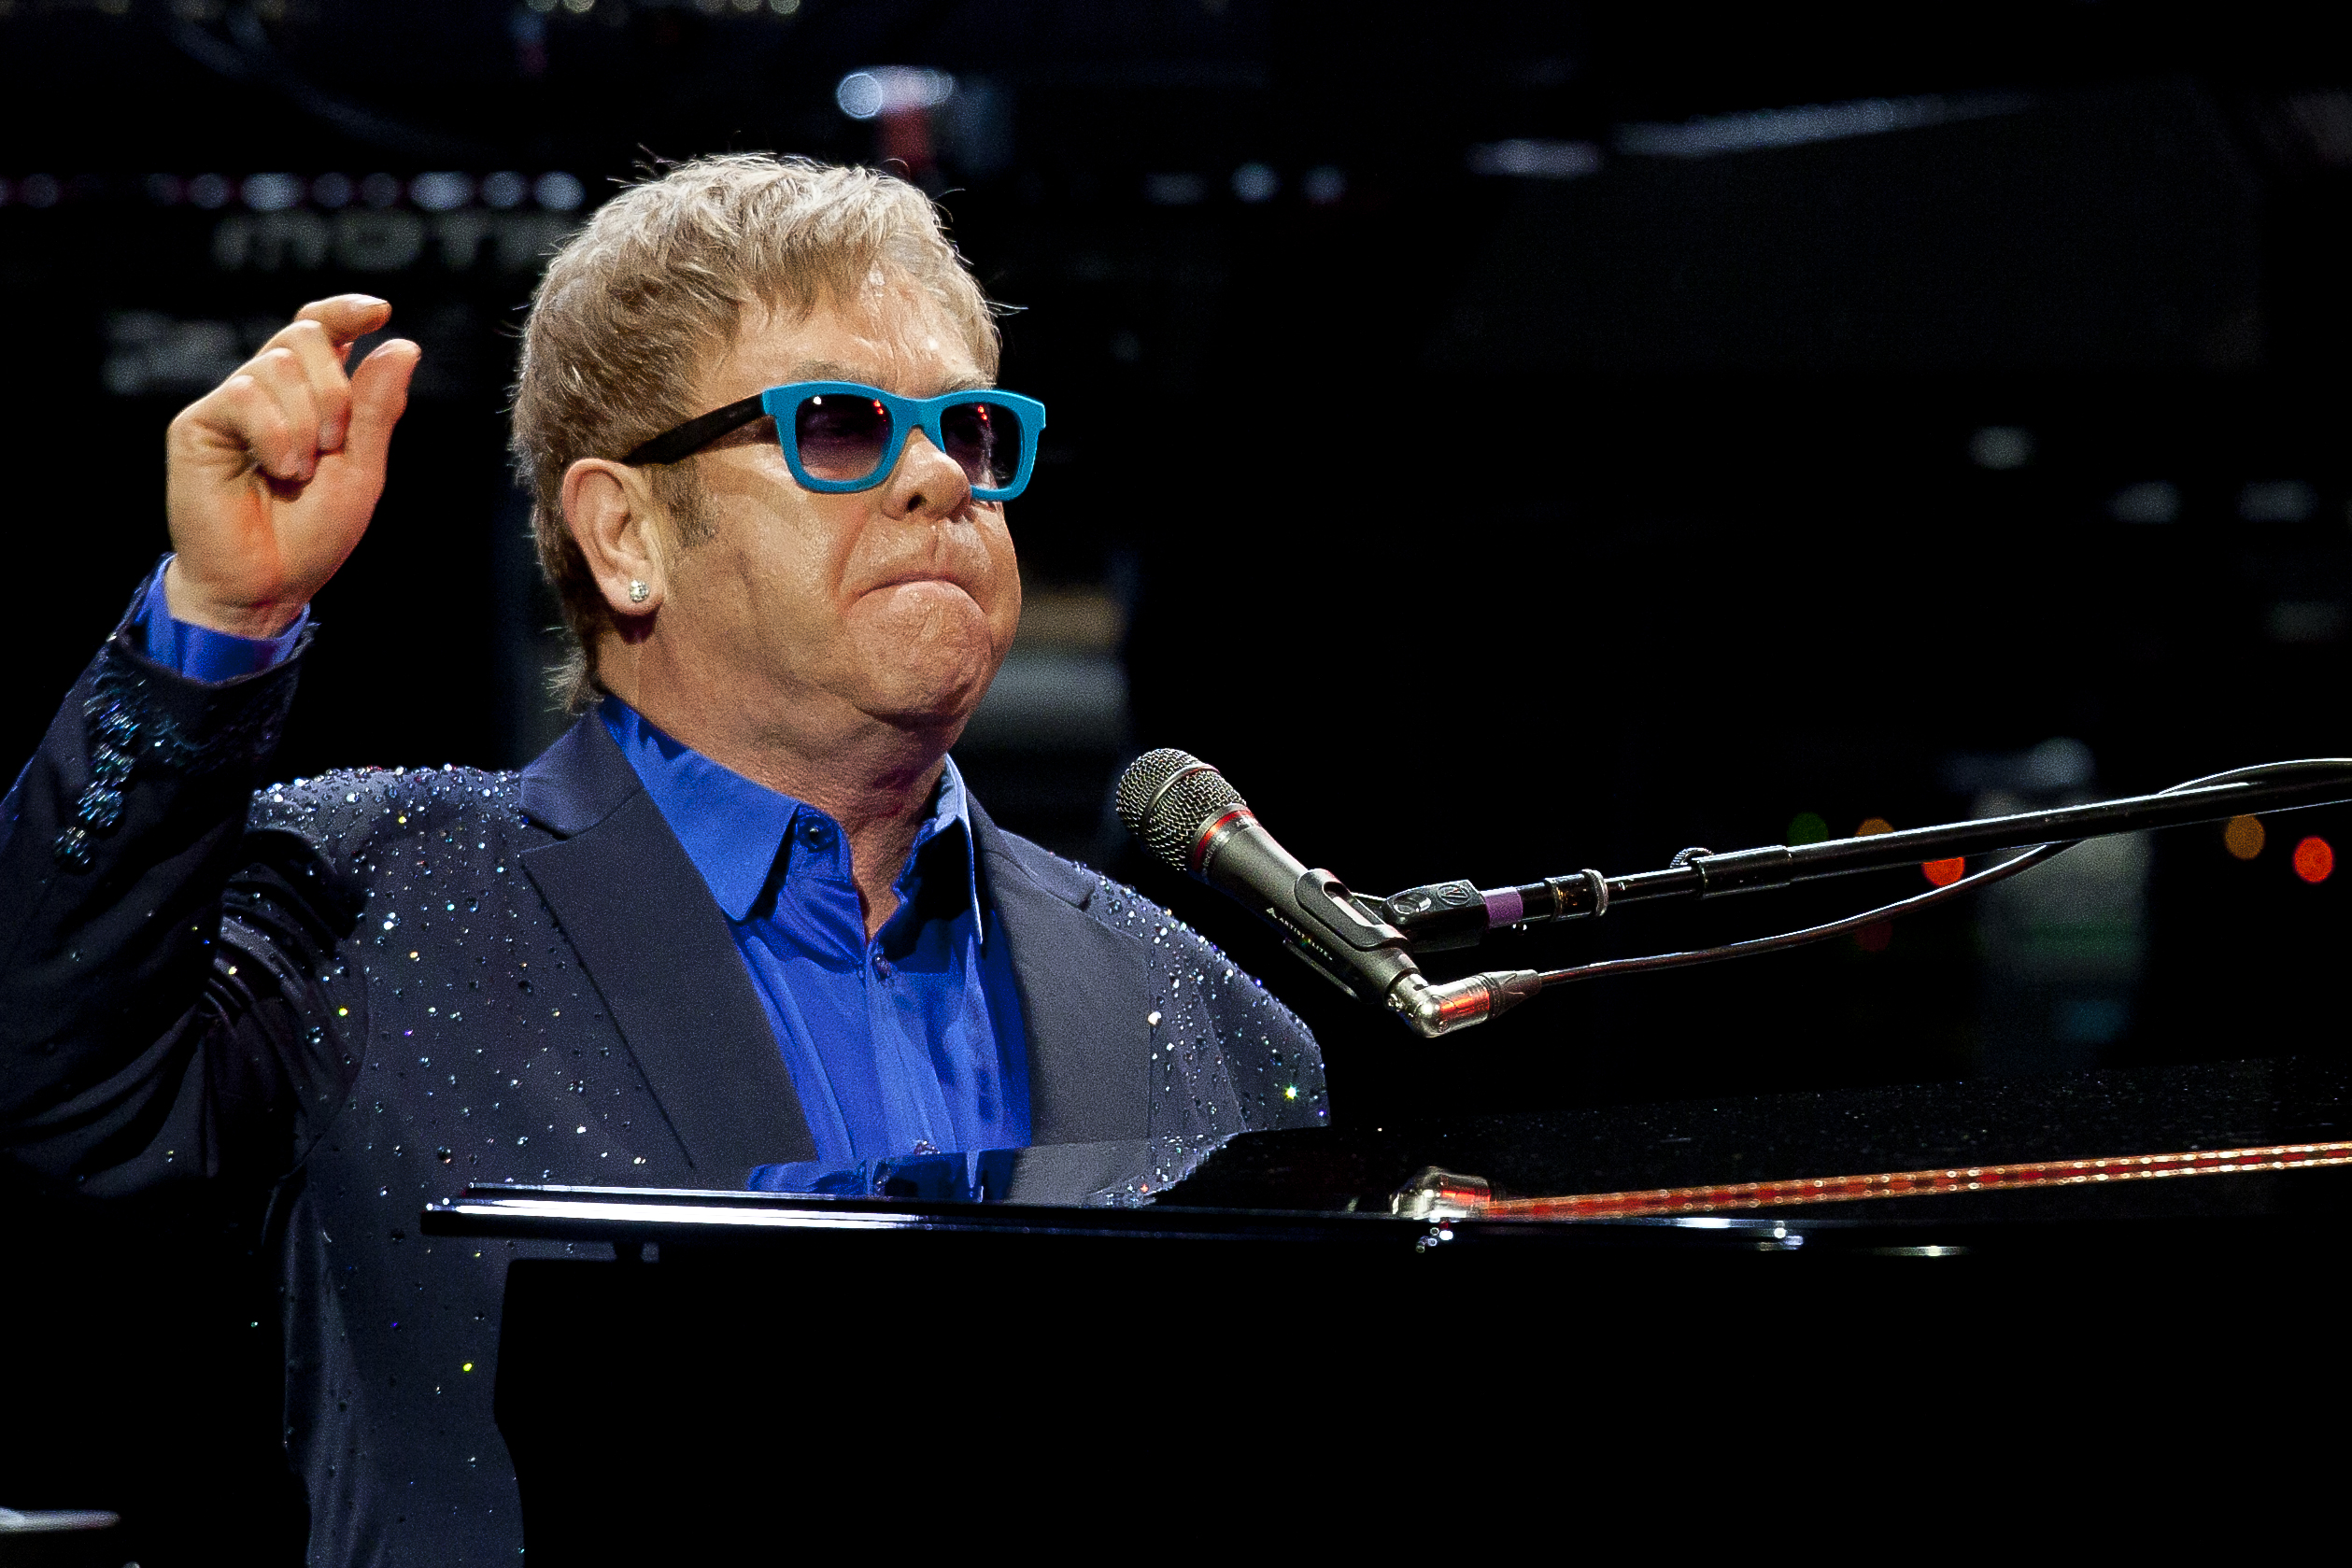 Sir Elton John and his band, during his performance at Royal Theatre in Madrid, Spain on July 20, 2015